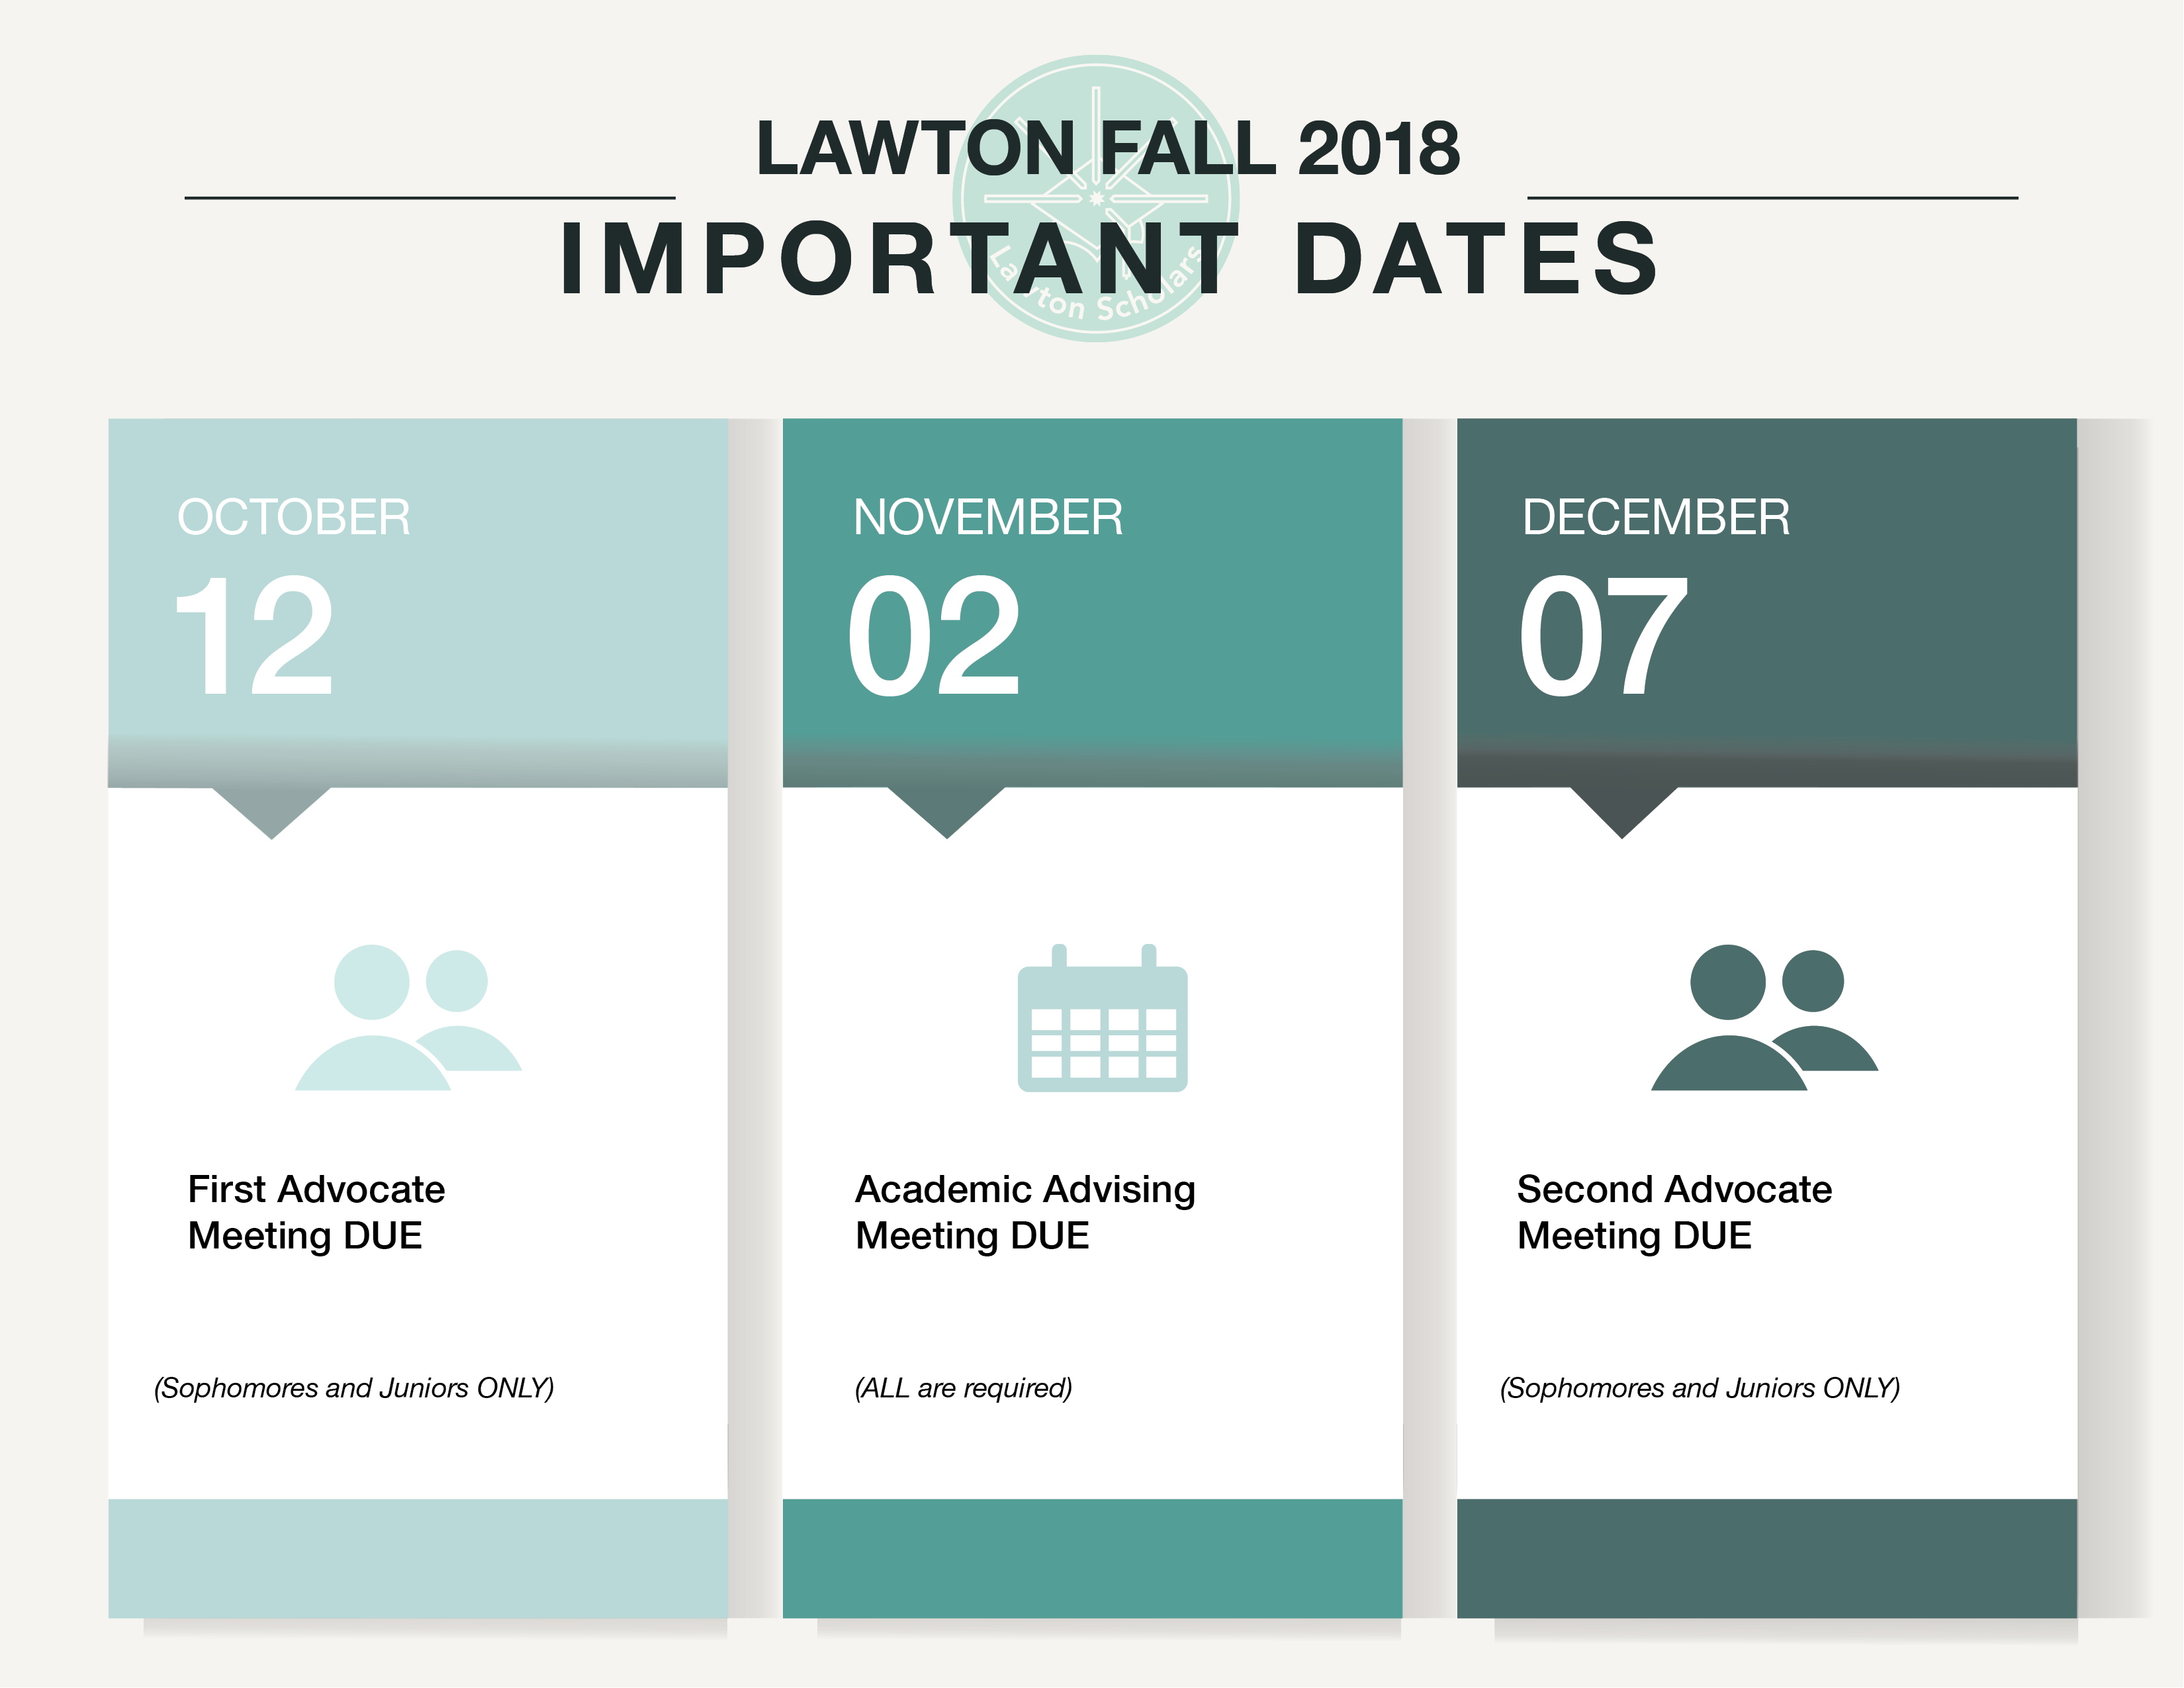 Important Dates For Lawton